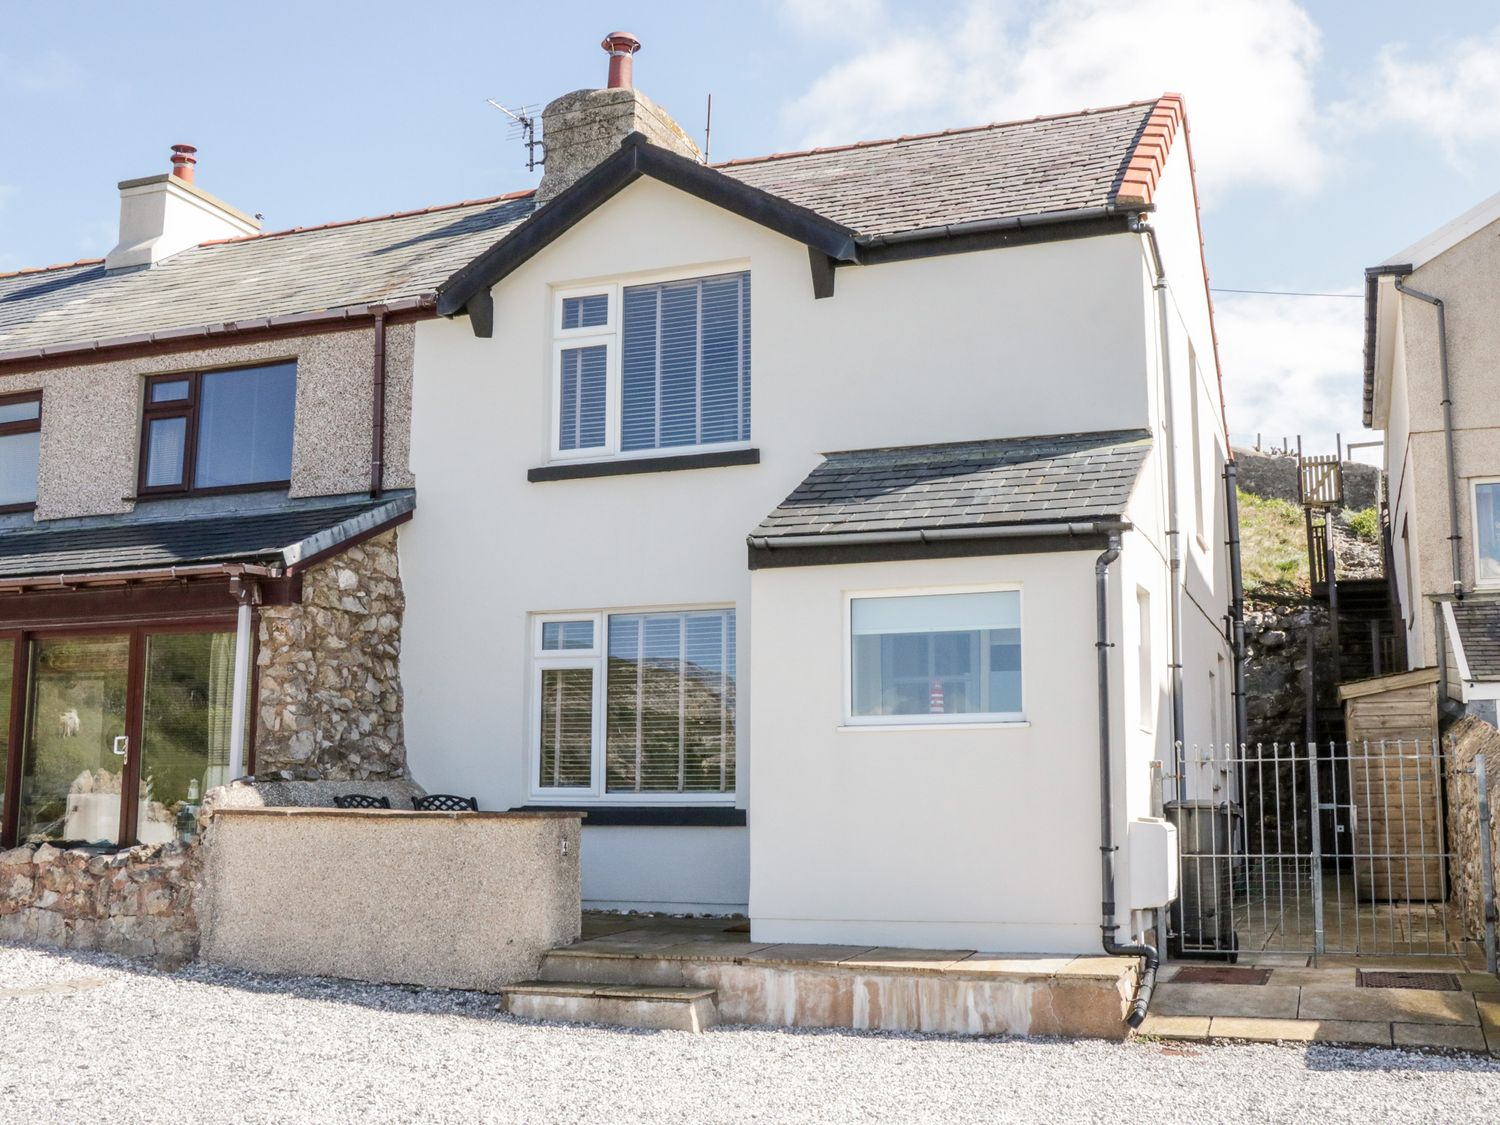 4 Anglesey Road - North Wales - 1058314 - photo 1